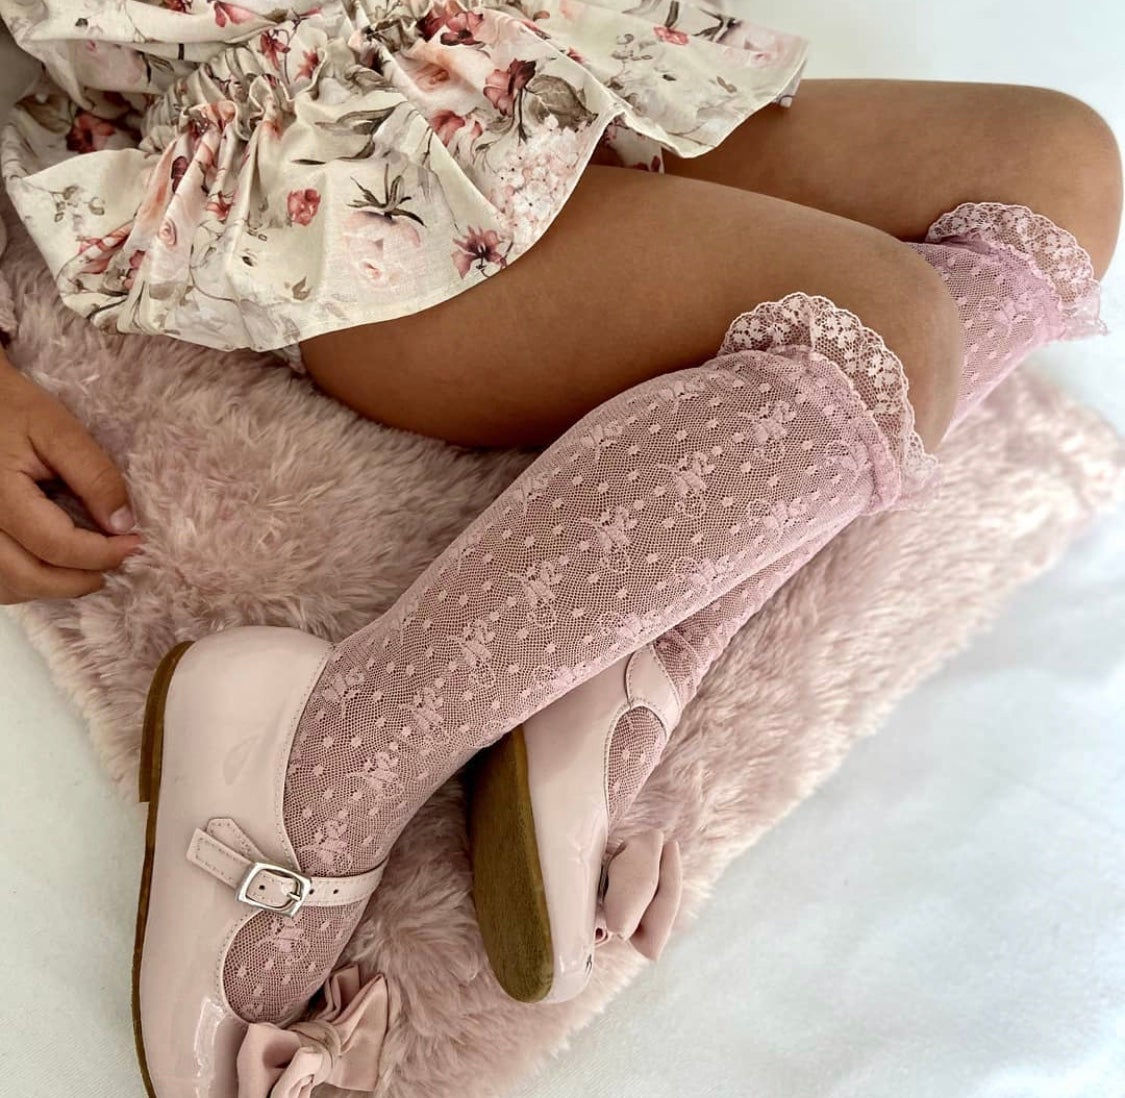 Image of Condor Ceremony lace socks